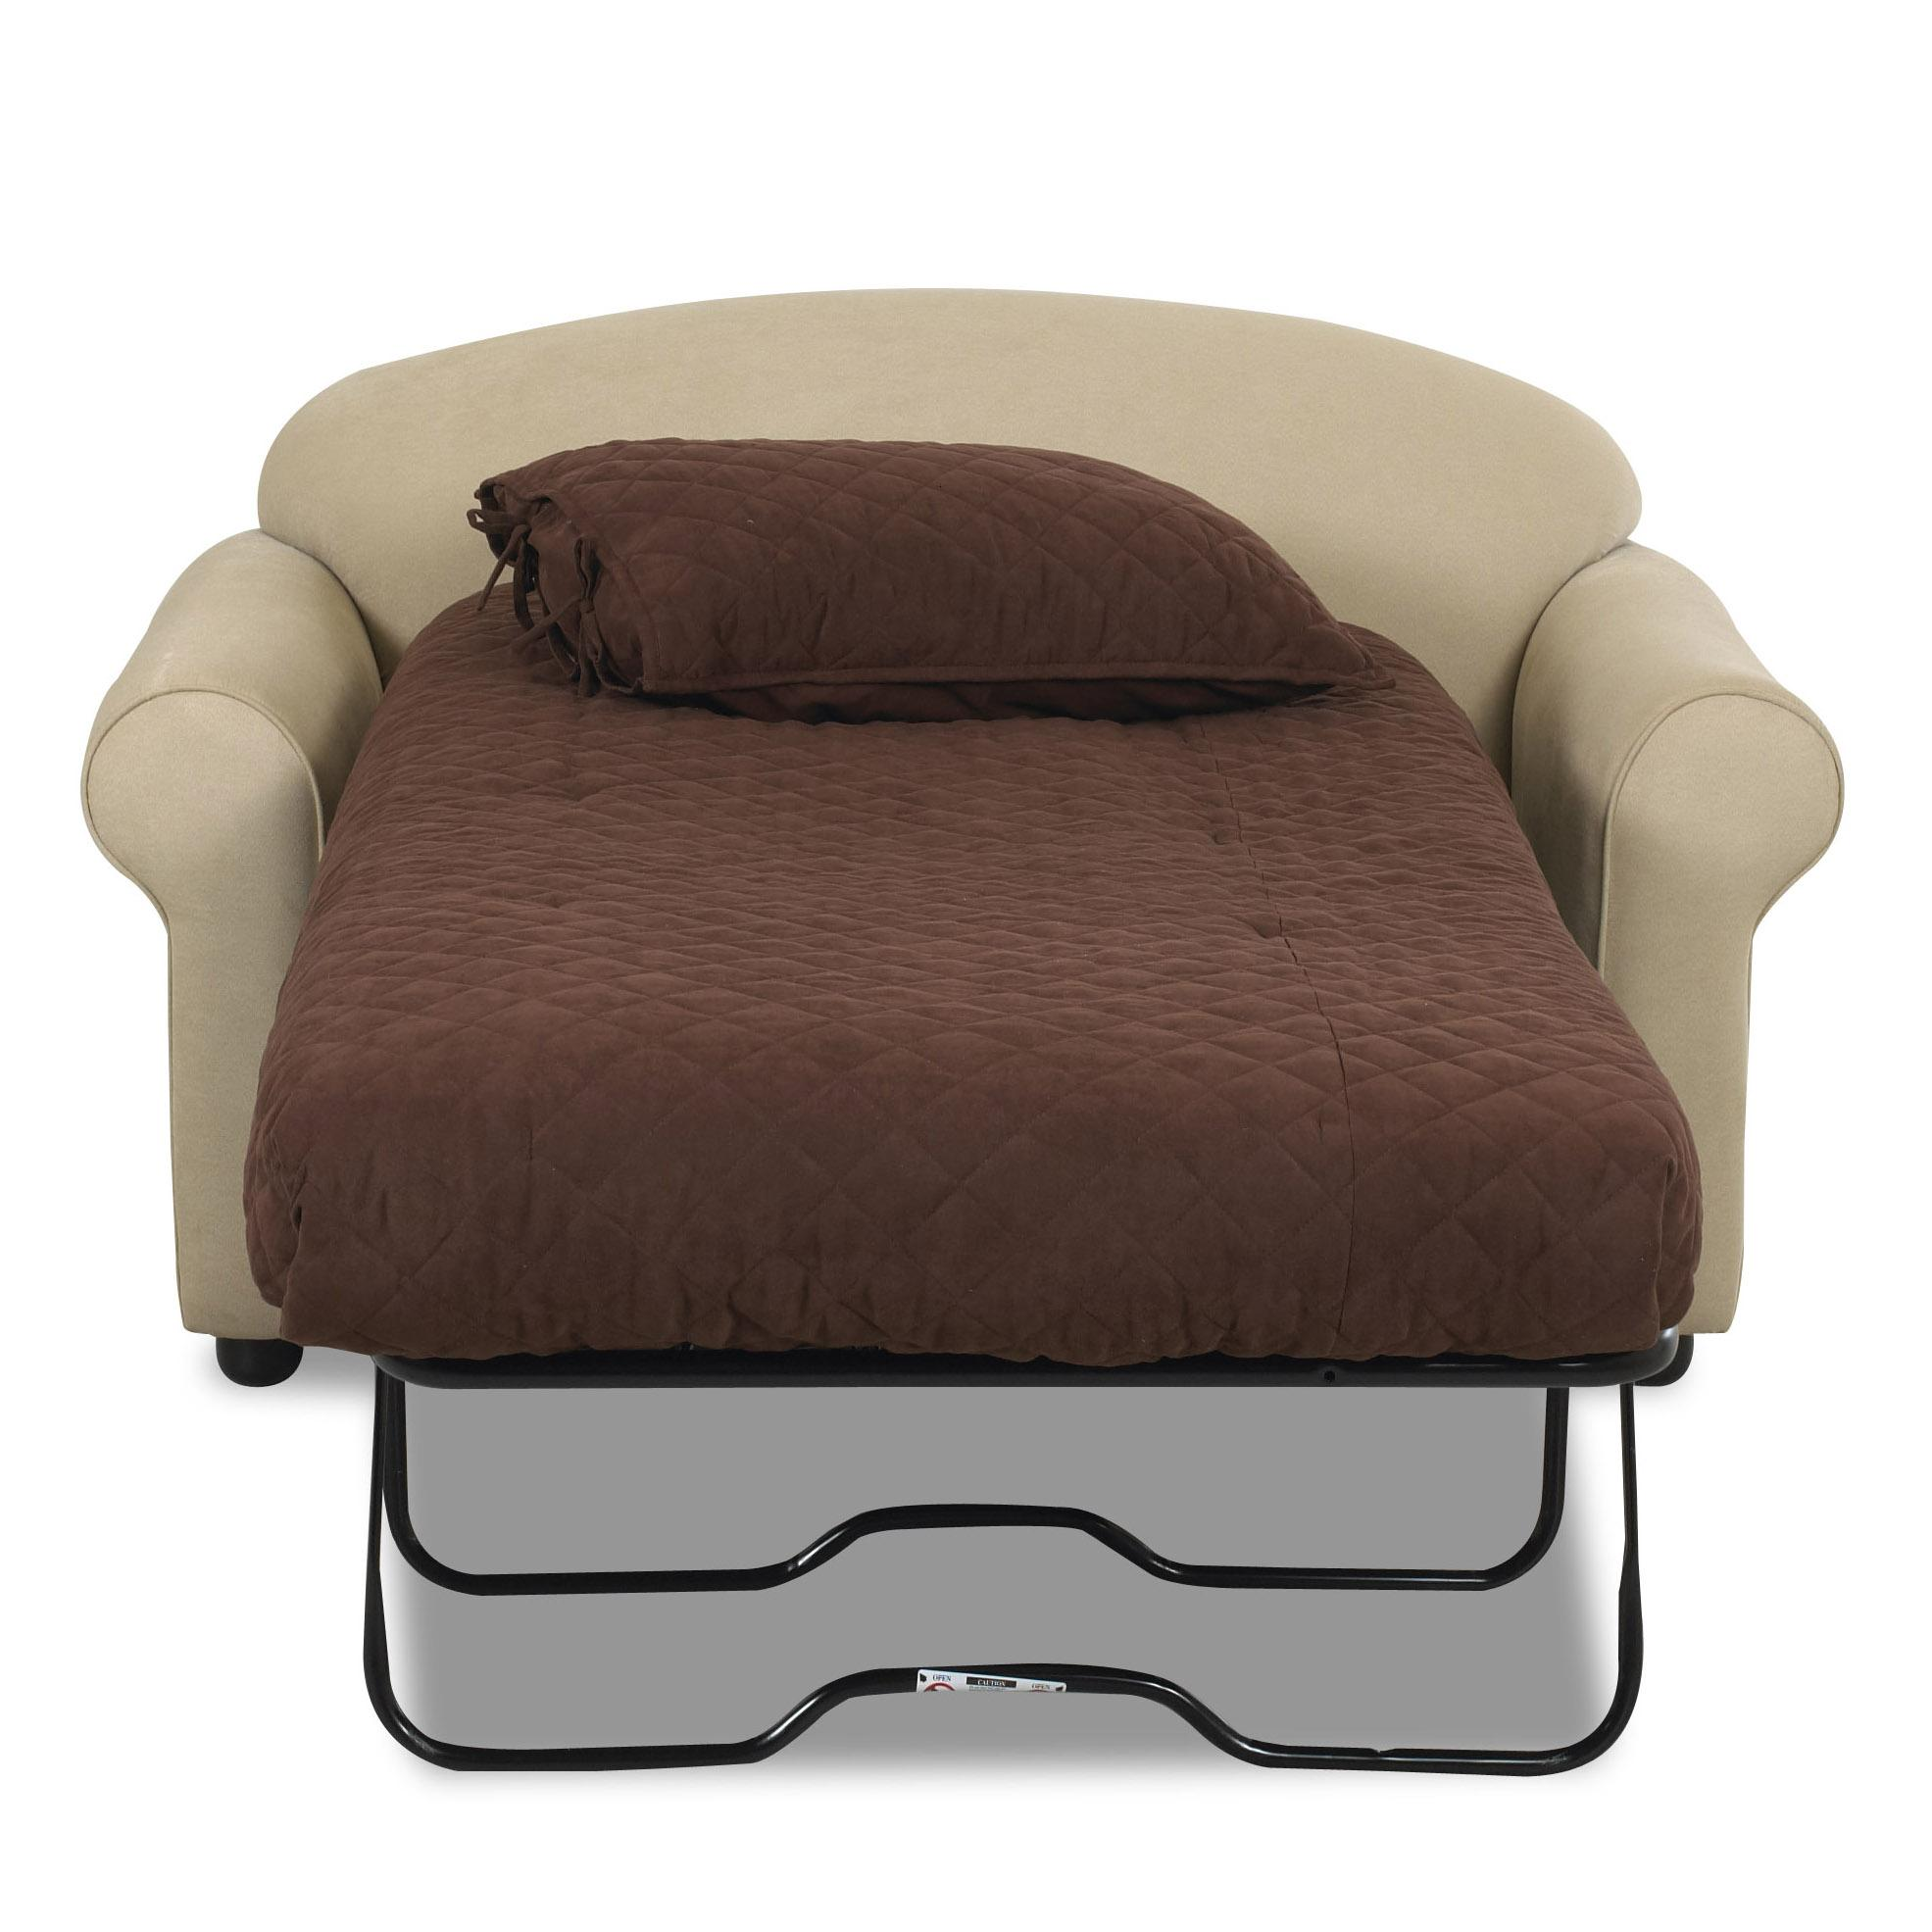 Queen Sofa Bed Ottoman Klaussner Possibilities Innerspring Chair Sleeper Darvin